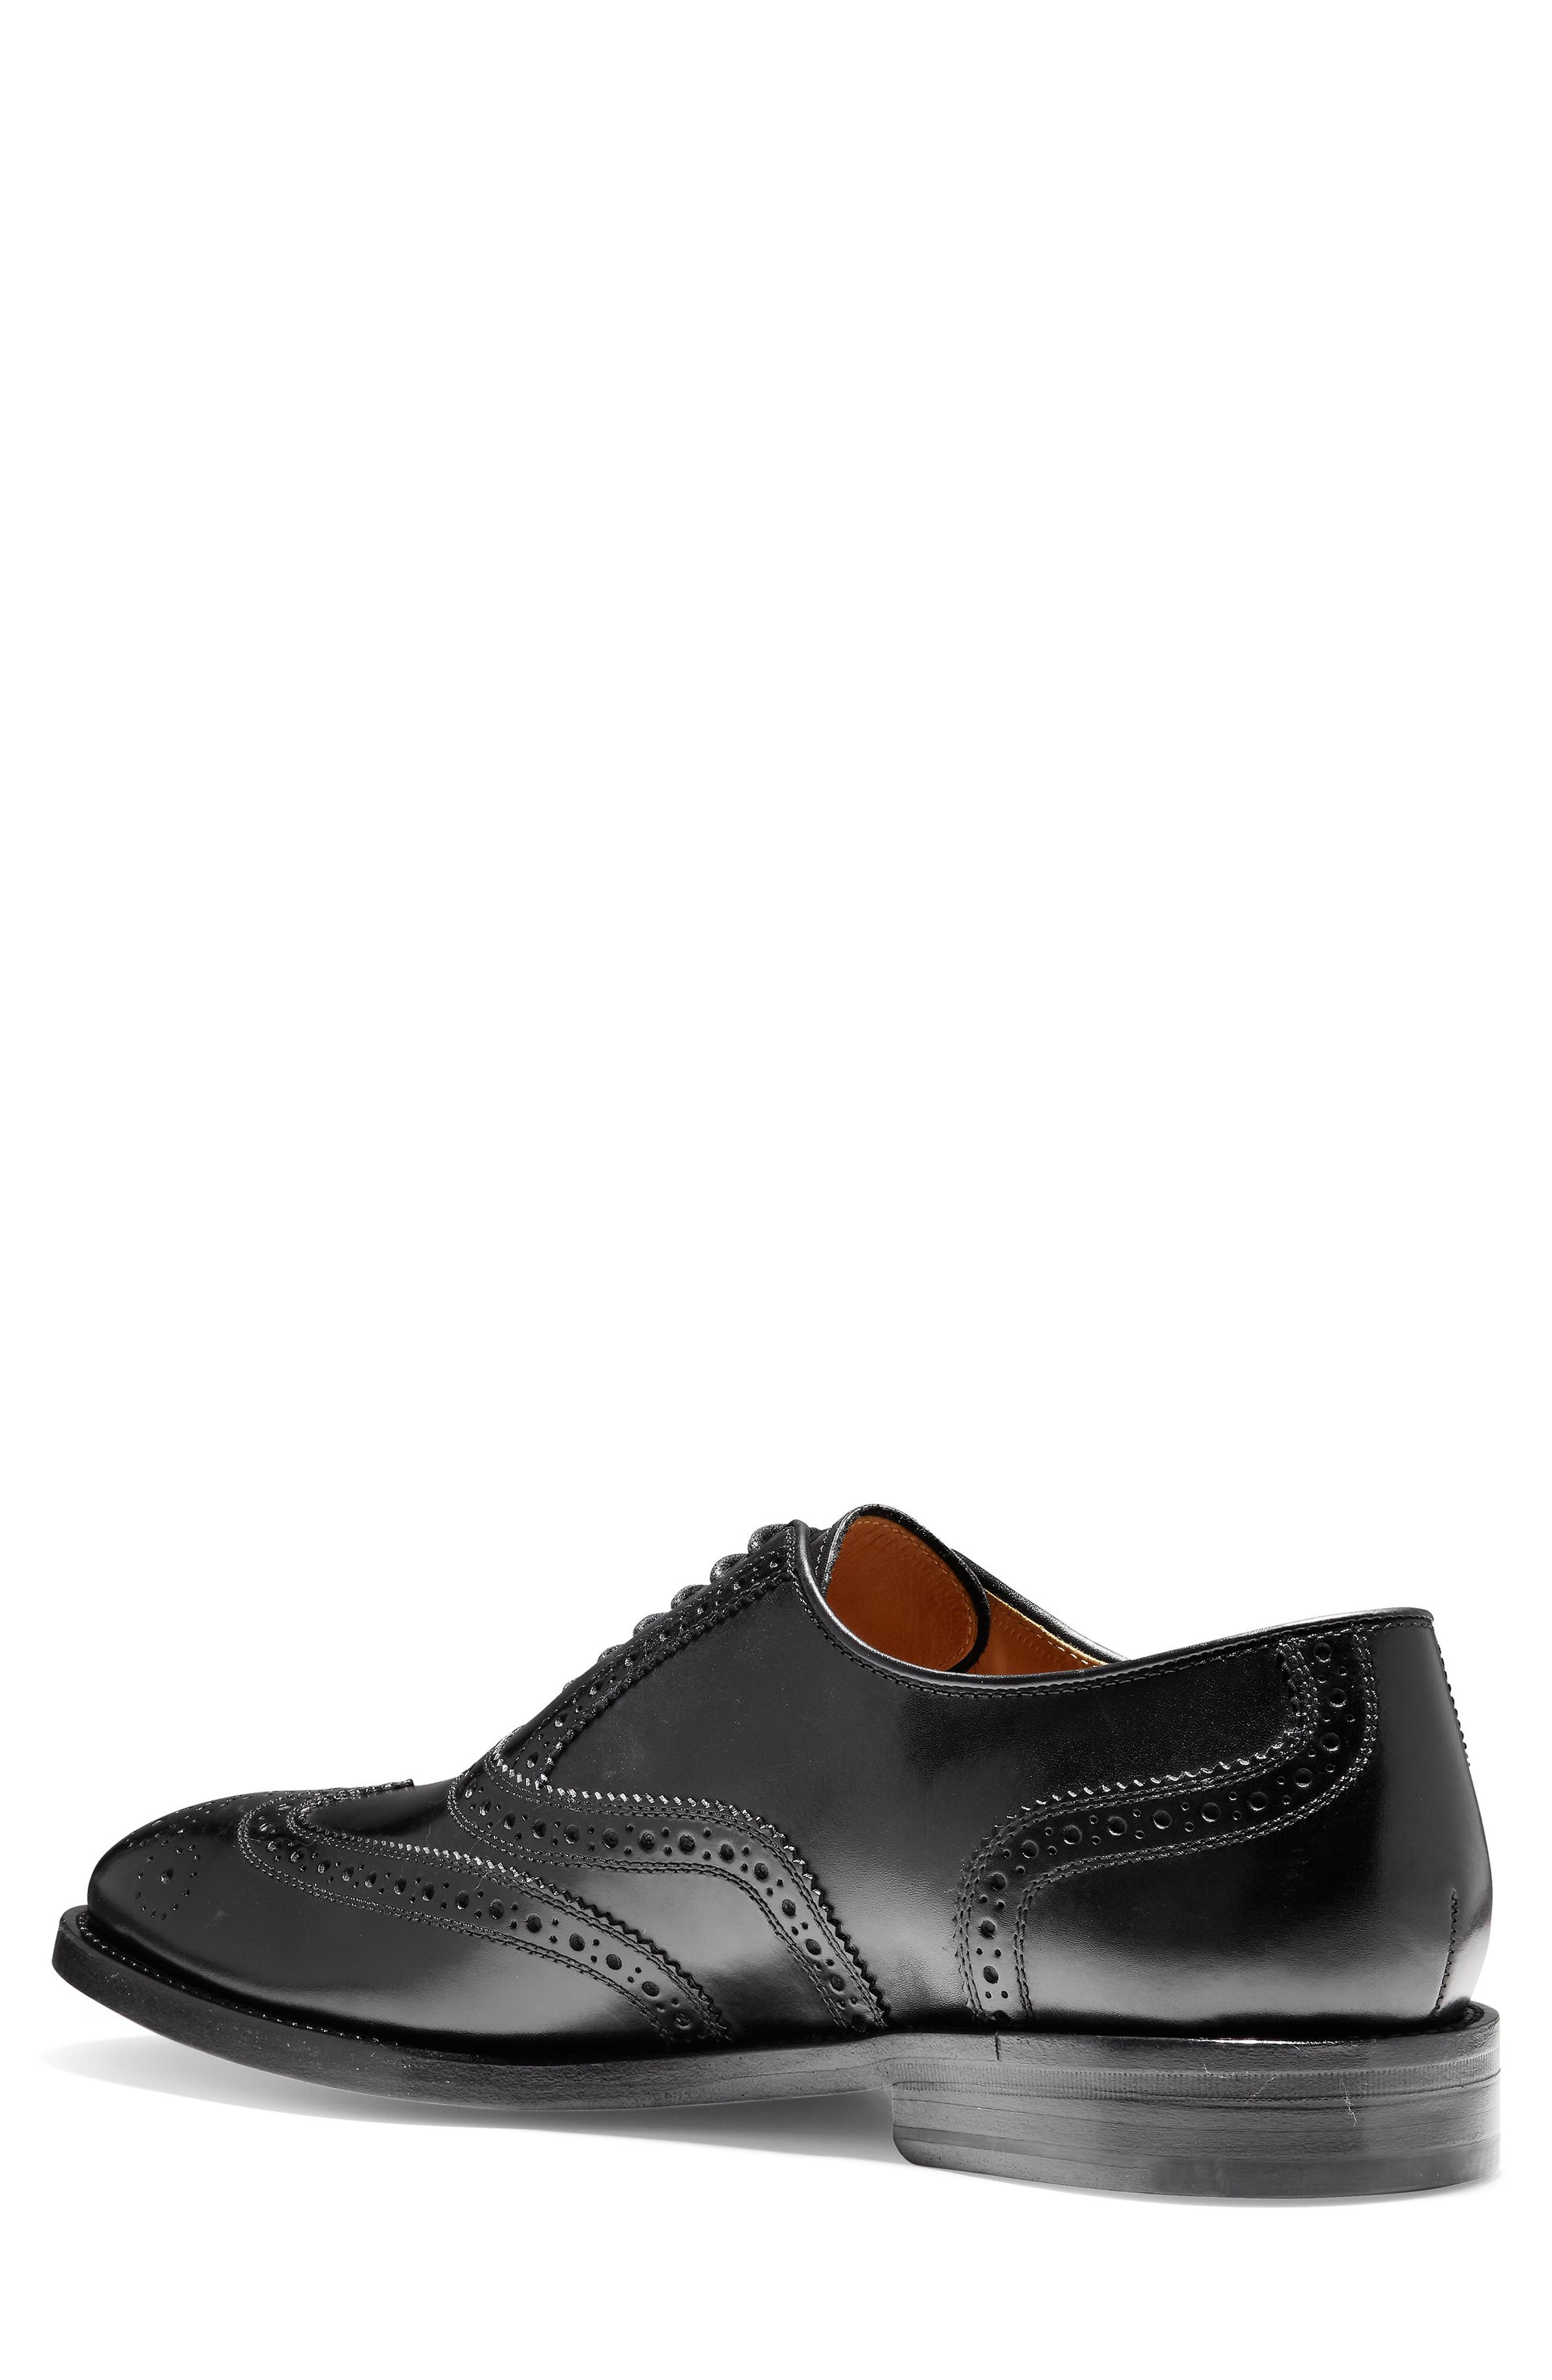 American Classics Kneeland Wingtip,                             Alternate thumbnail 2, color,                             BLACK LEATHER